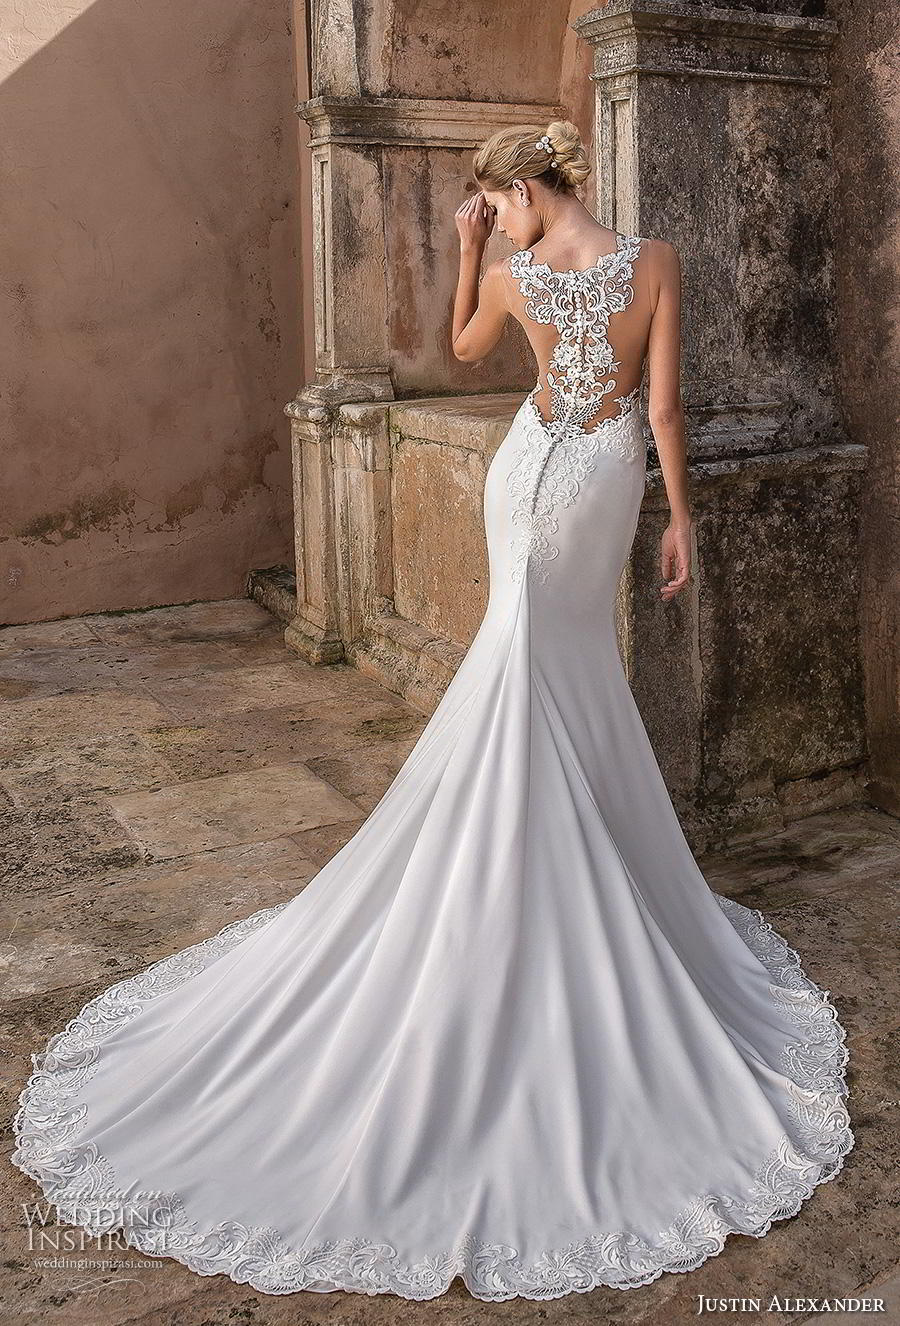 justin alexander spring 2019 bridal sleeveless embellished strap sweetheart neckline heavily embellished bodice hem elegant fit and flare wedding dress lace button back chapel train (13) bv